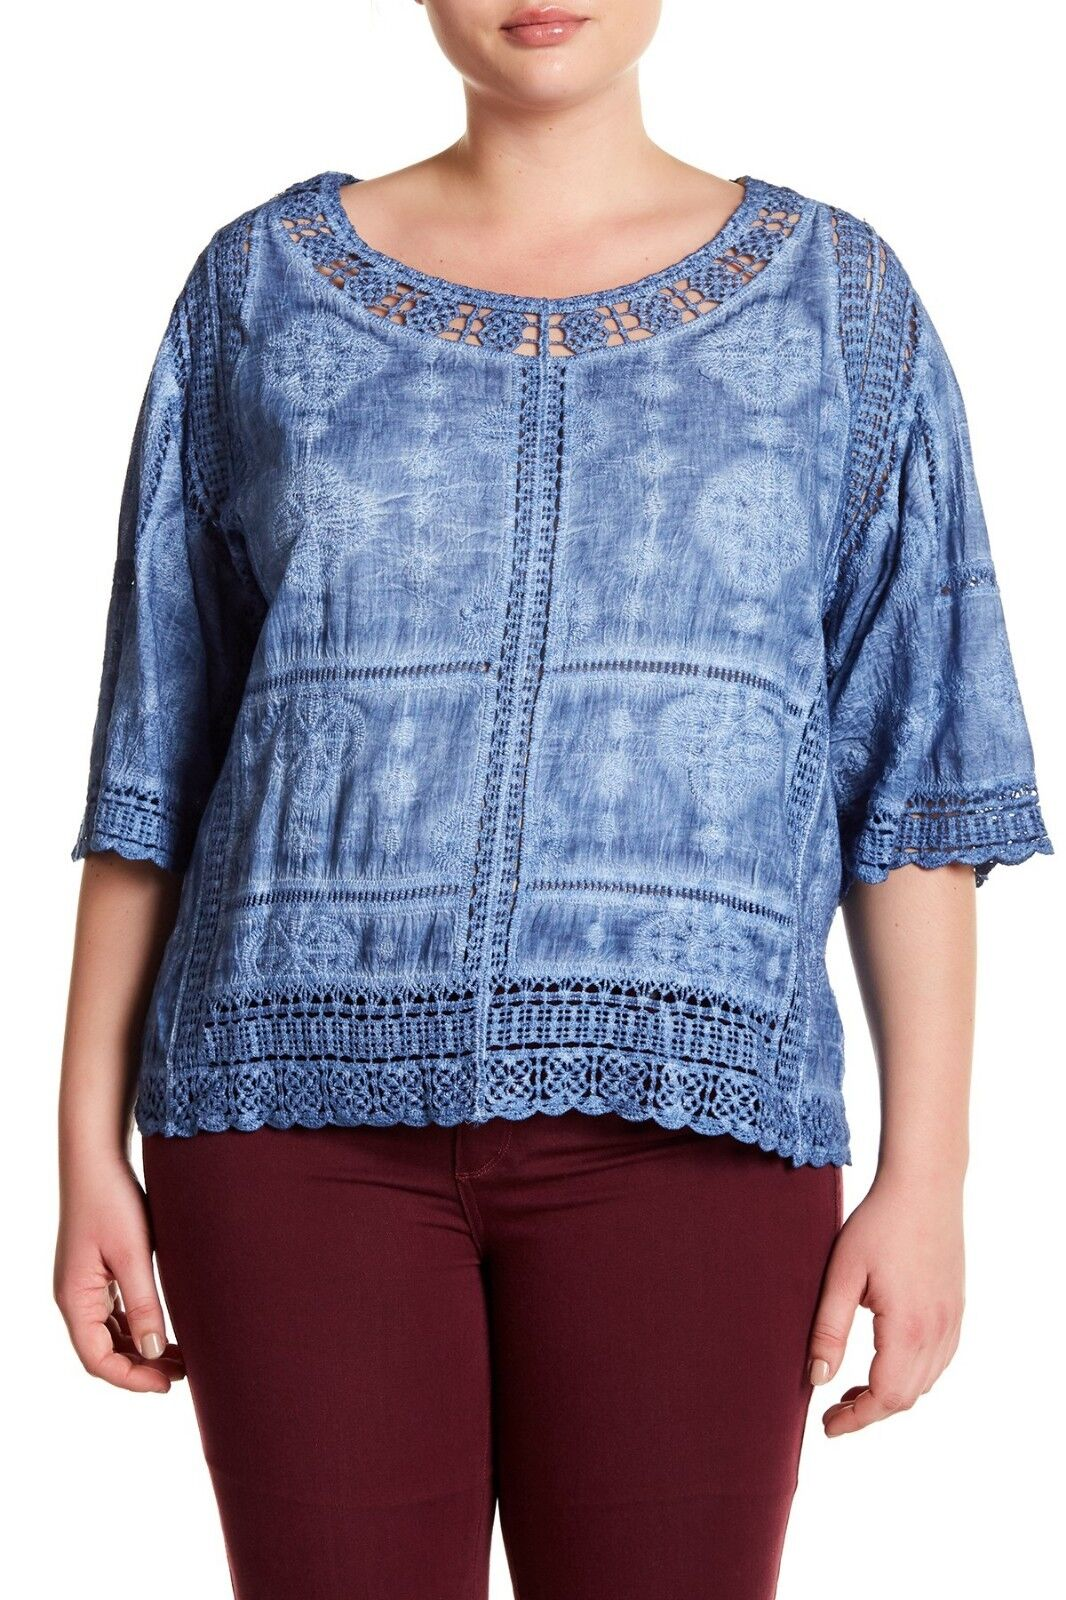 NEW NWT NWT NWT Democracy 100% Cotton Plus Size bluee Floral Print Crocheted Blouse 3X 604204